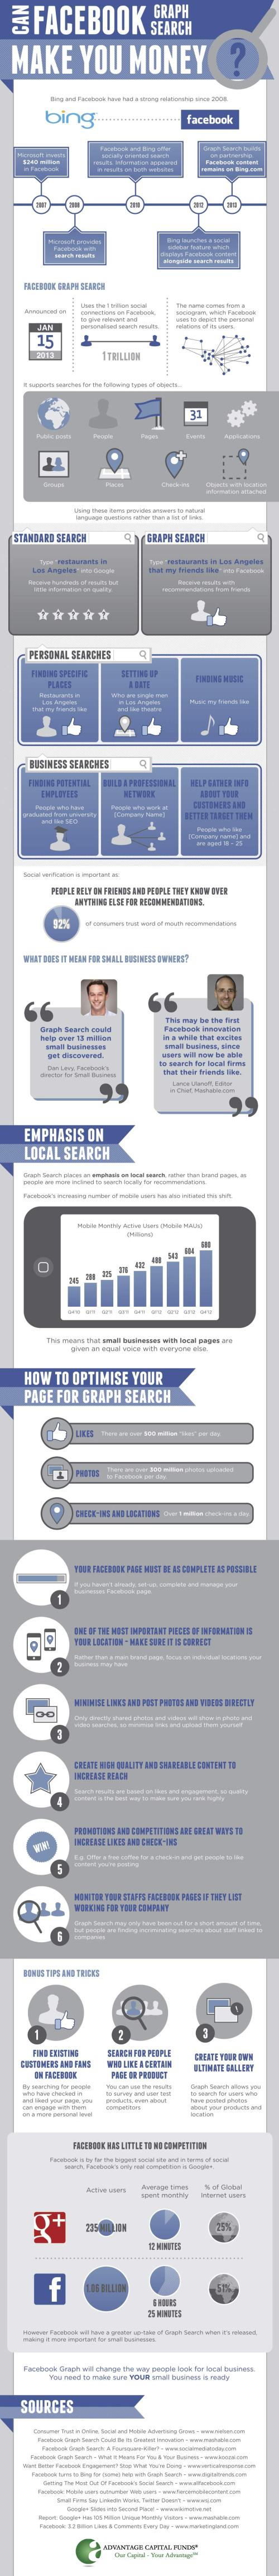 can-facebook-graph-make-you-money-infographic_514702c8362d2